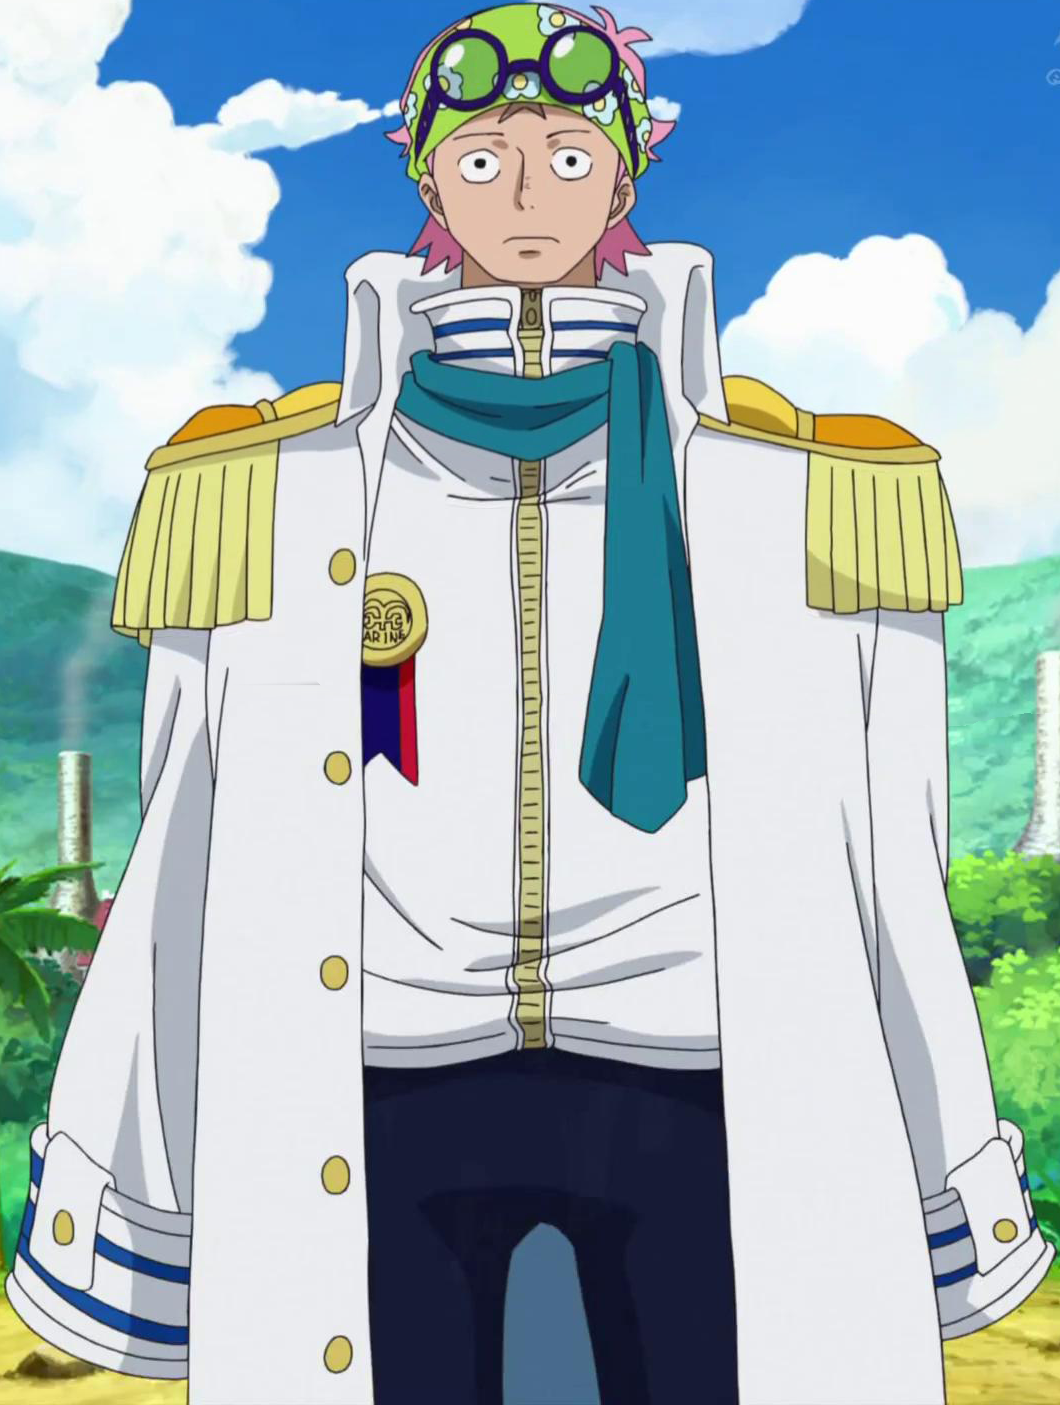 Koby | One Piece Wiki | FANDOM powered by Wikia